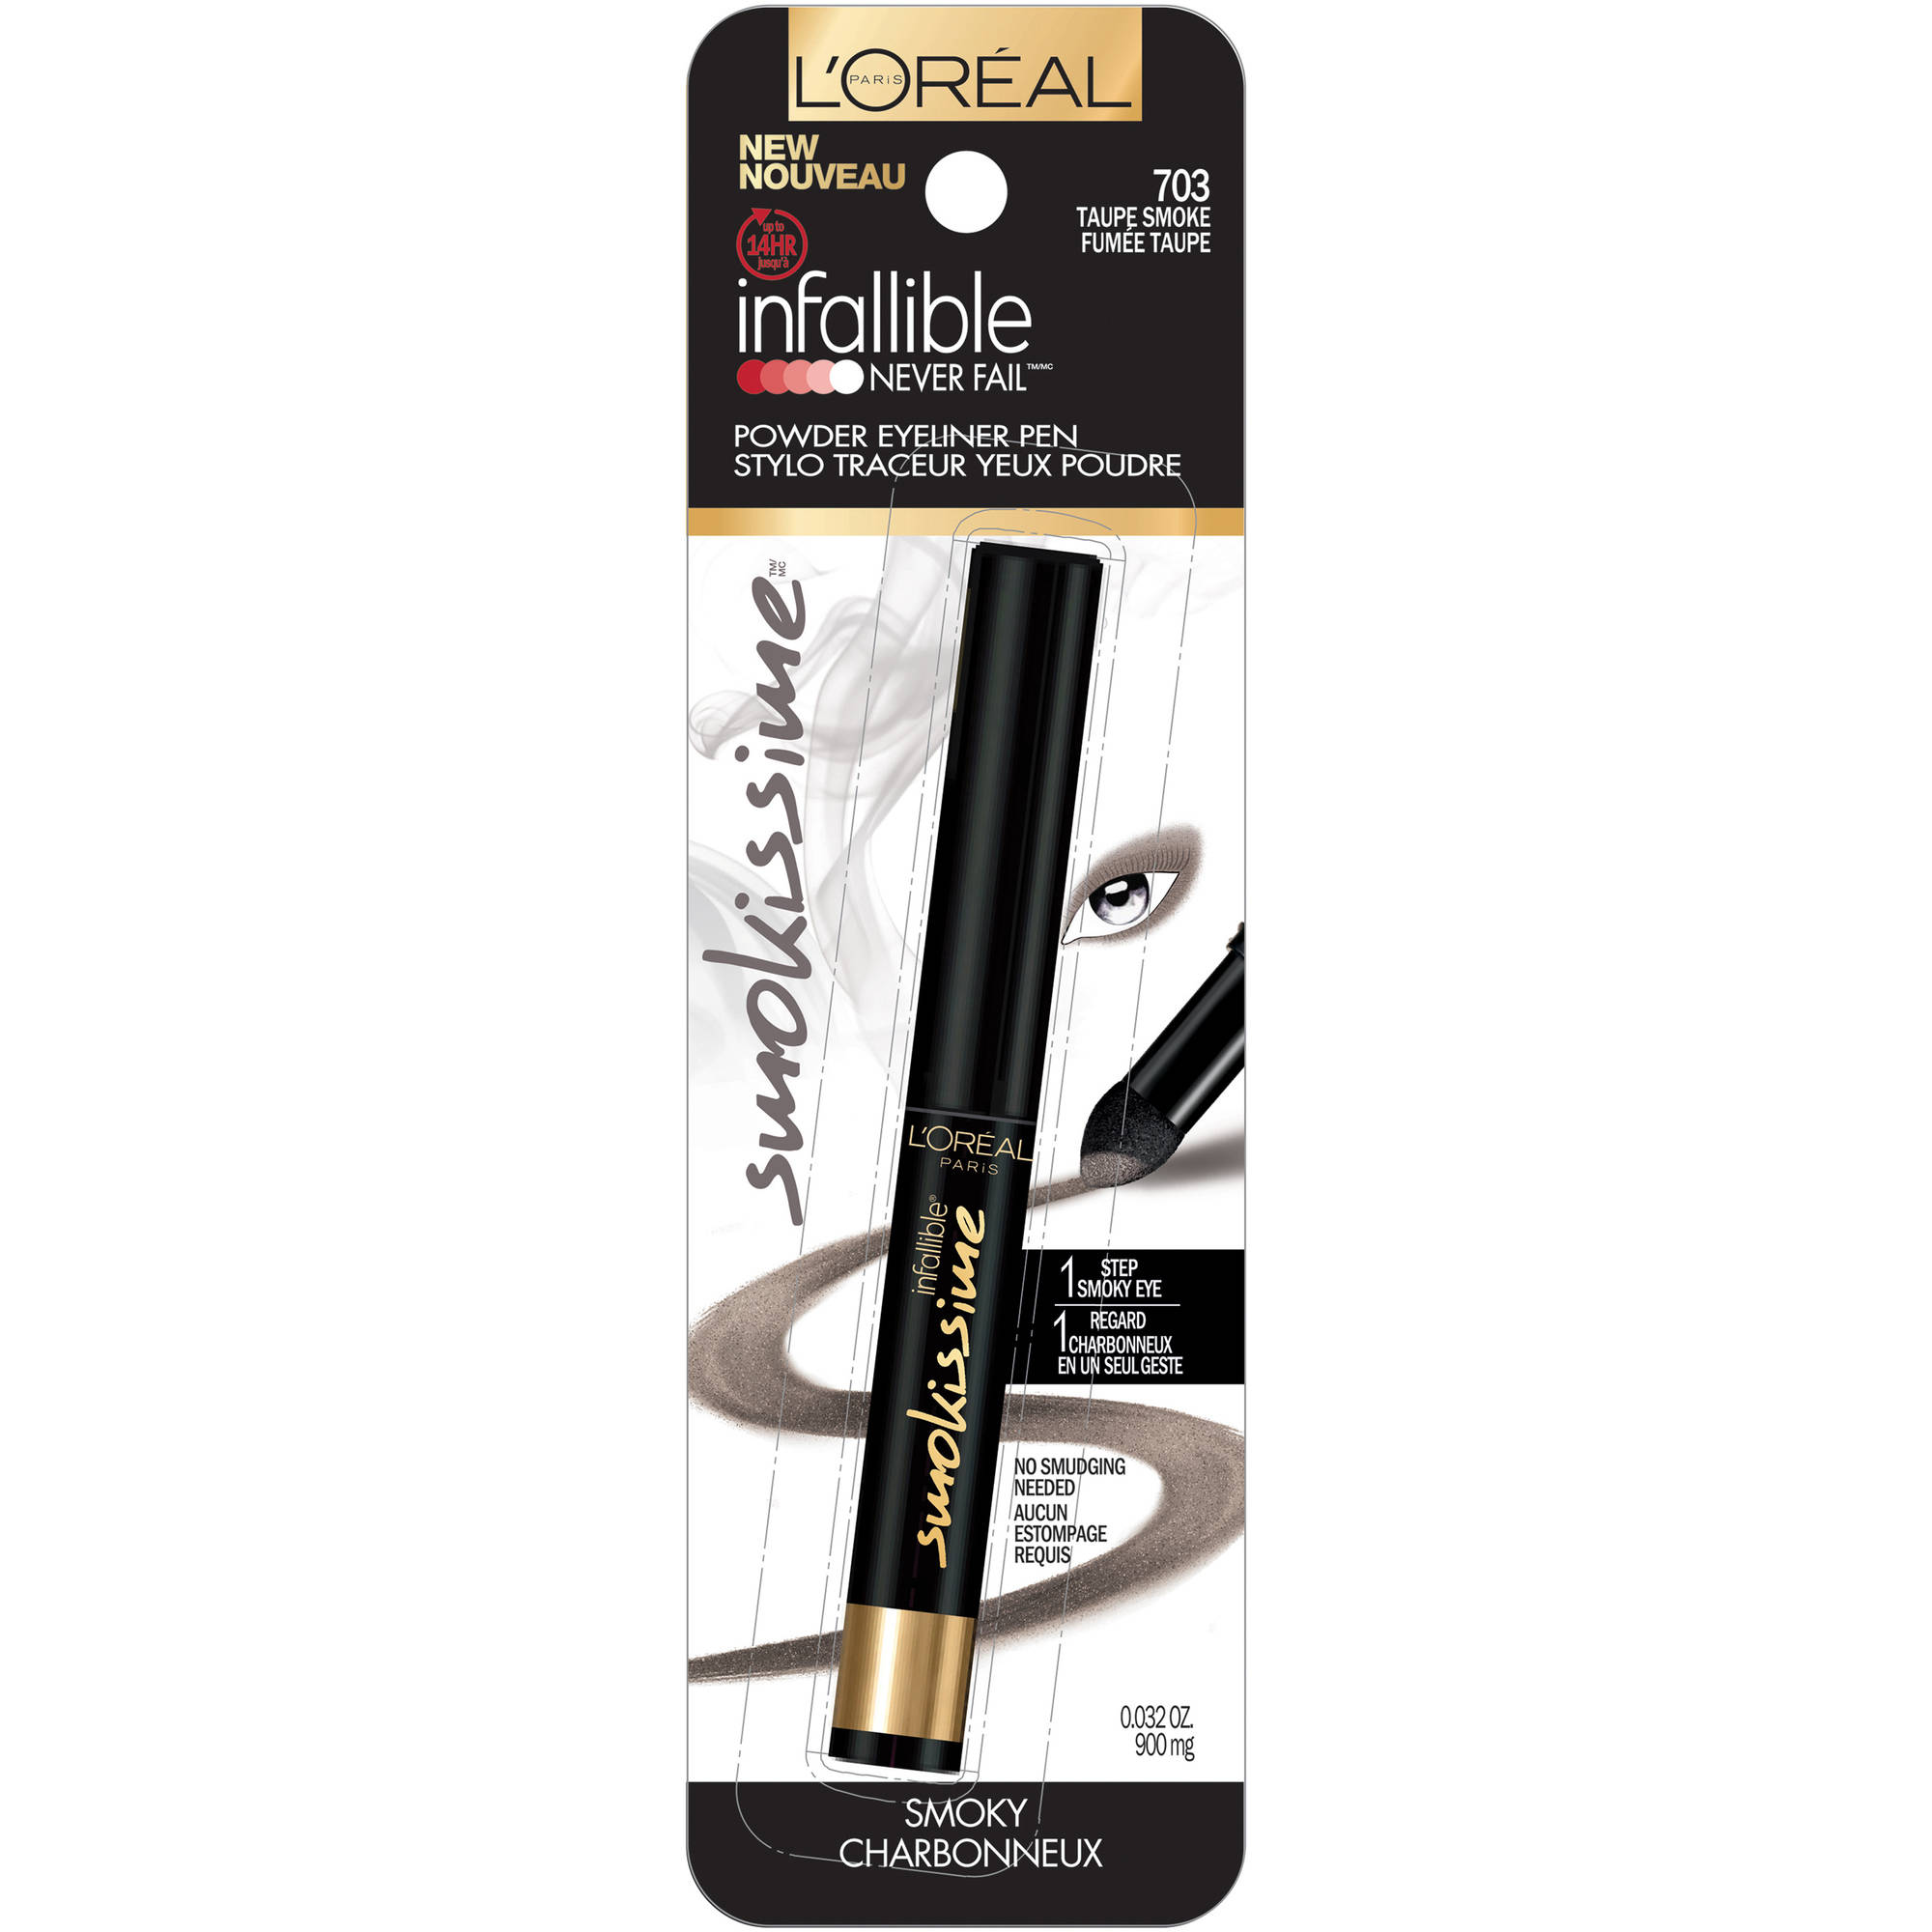 L'Oreal Paris Infallible Smokissime Never Fail Eyeliner